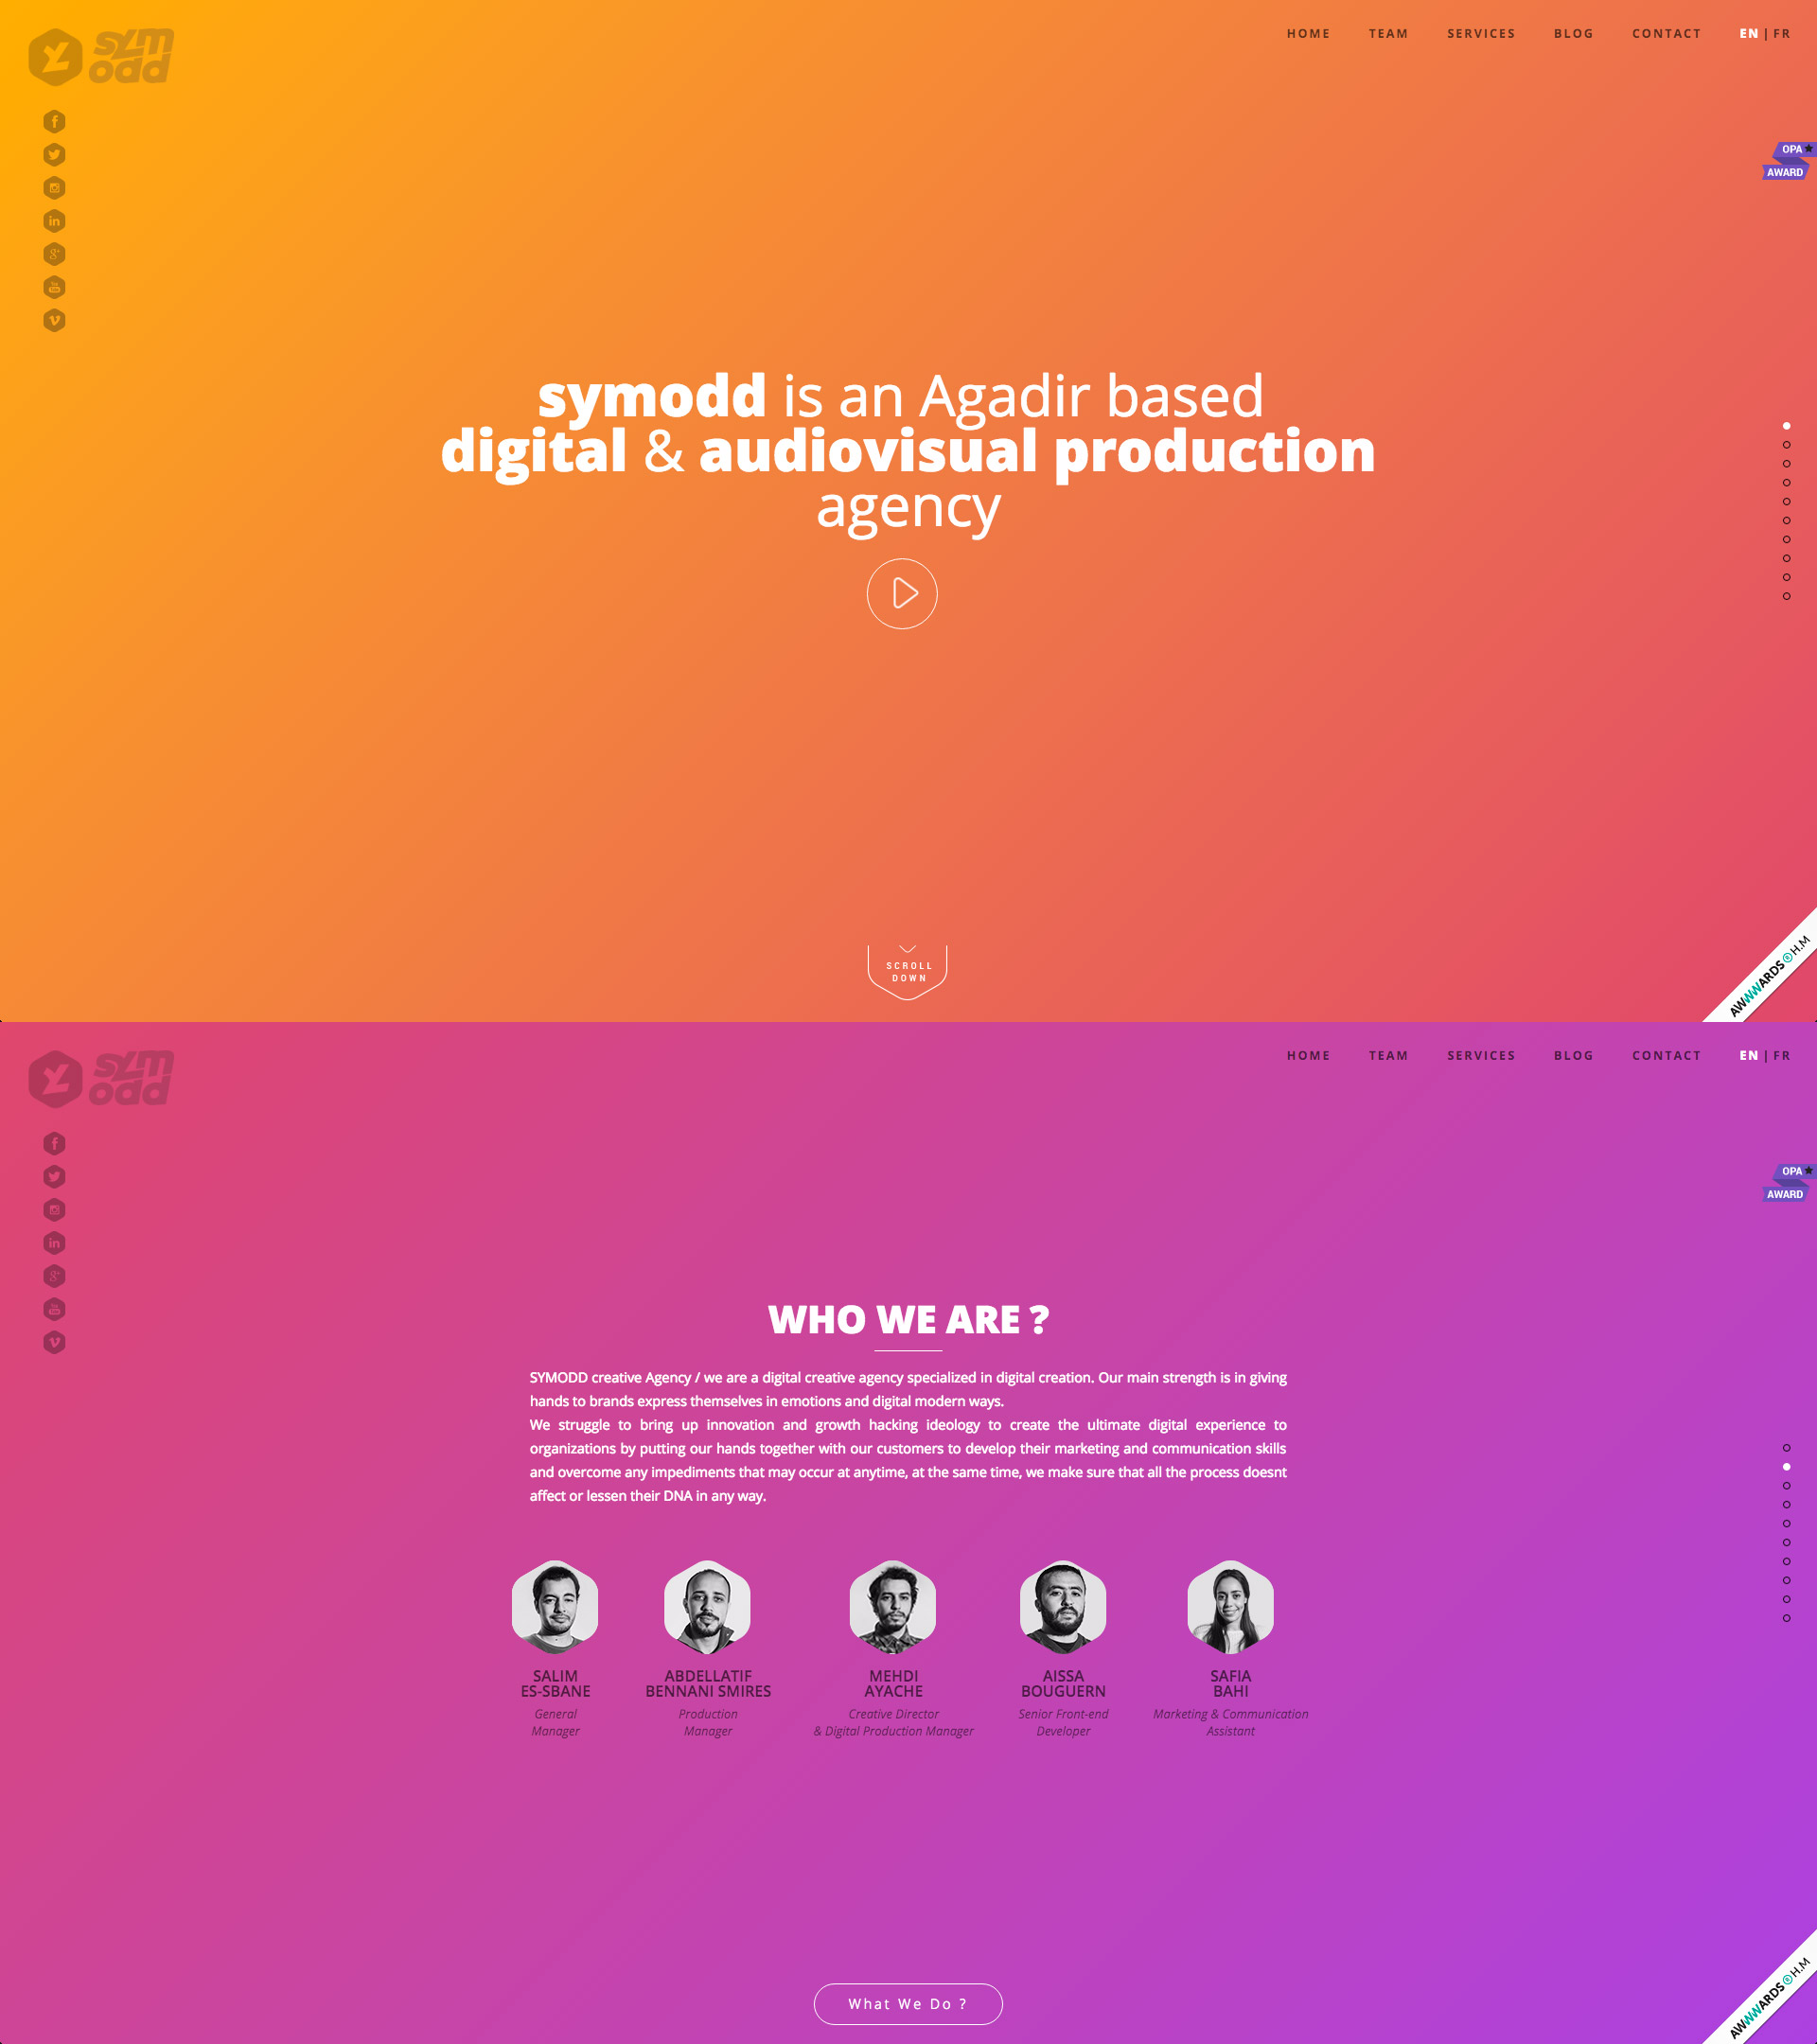 slider background gradient